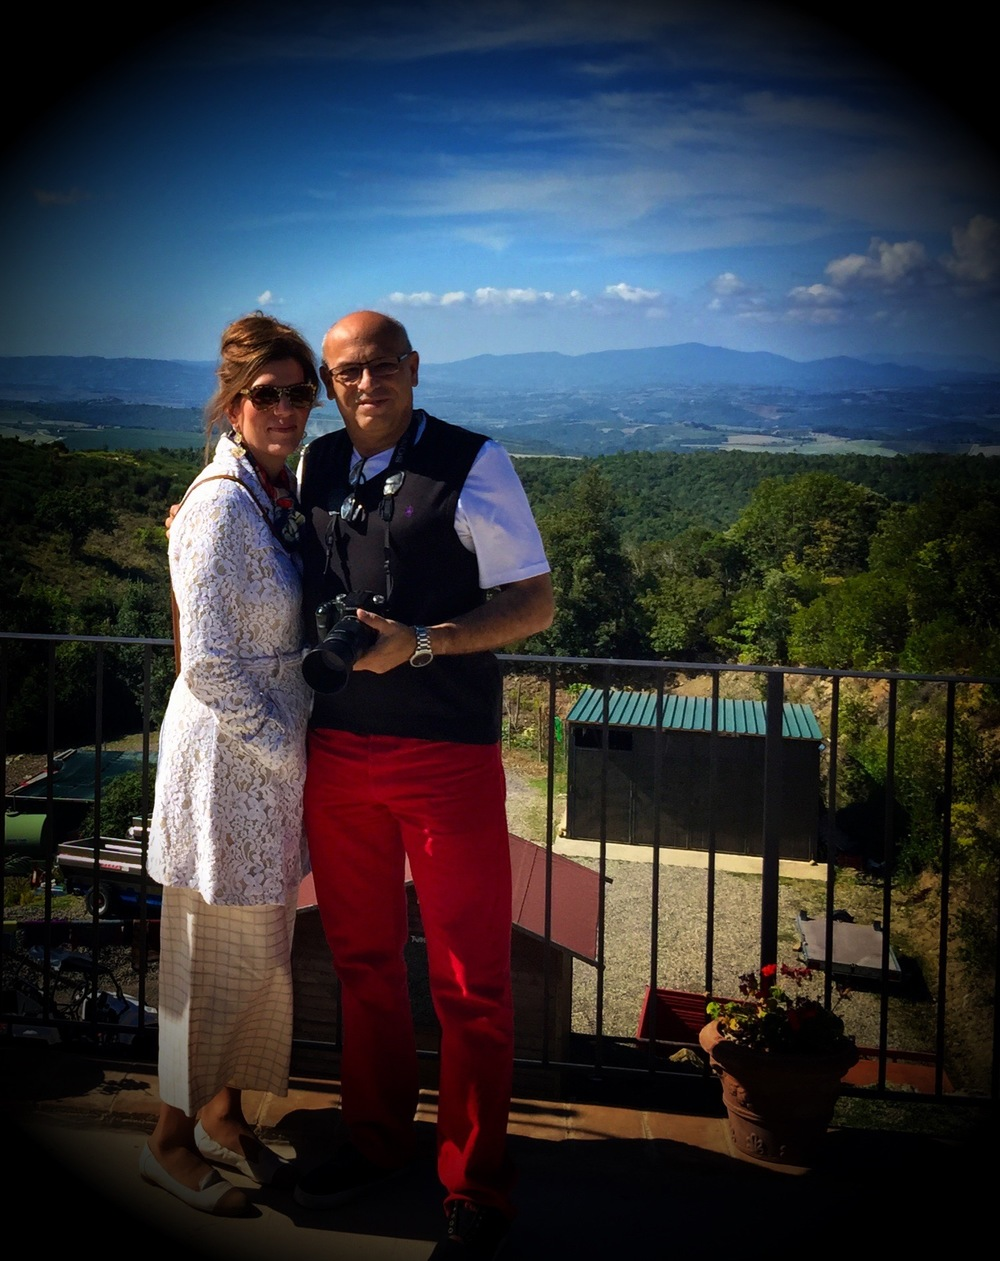 Isabel and Mark at the Poggio Rubino Winery - Montalcino, Tuscany Sept 2015